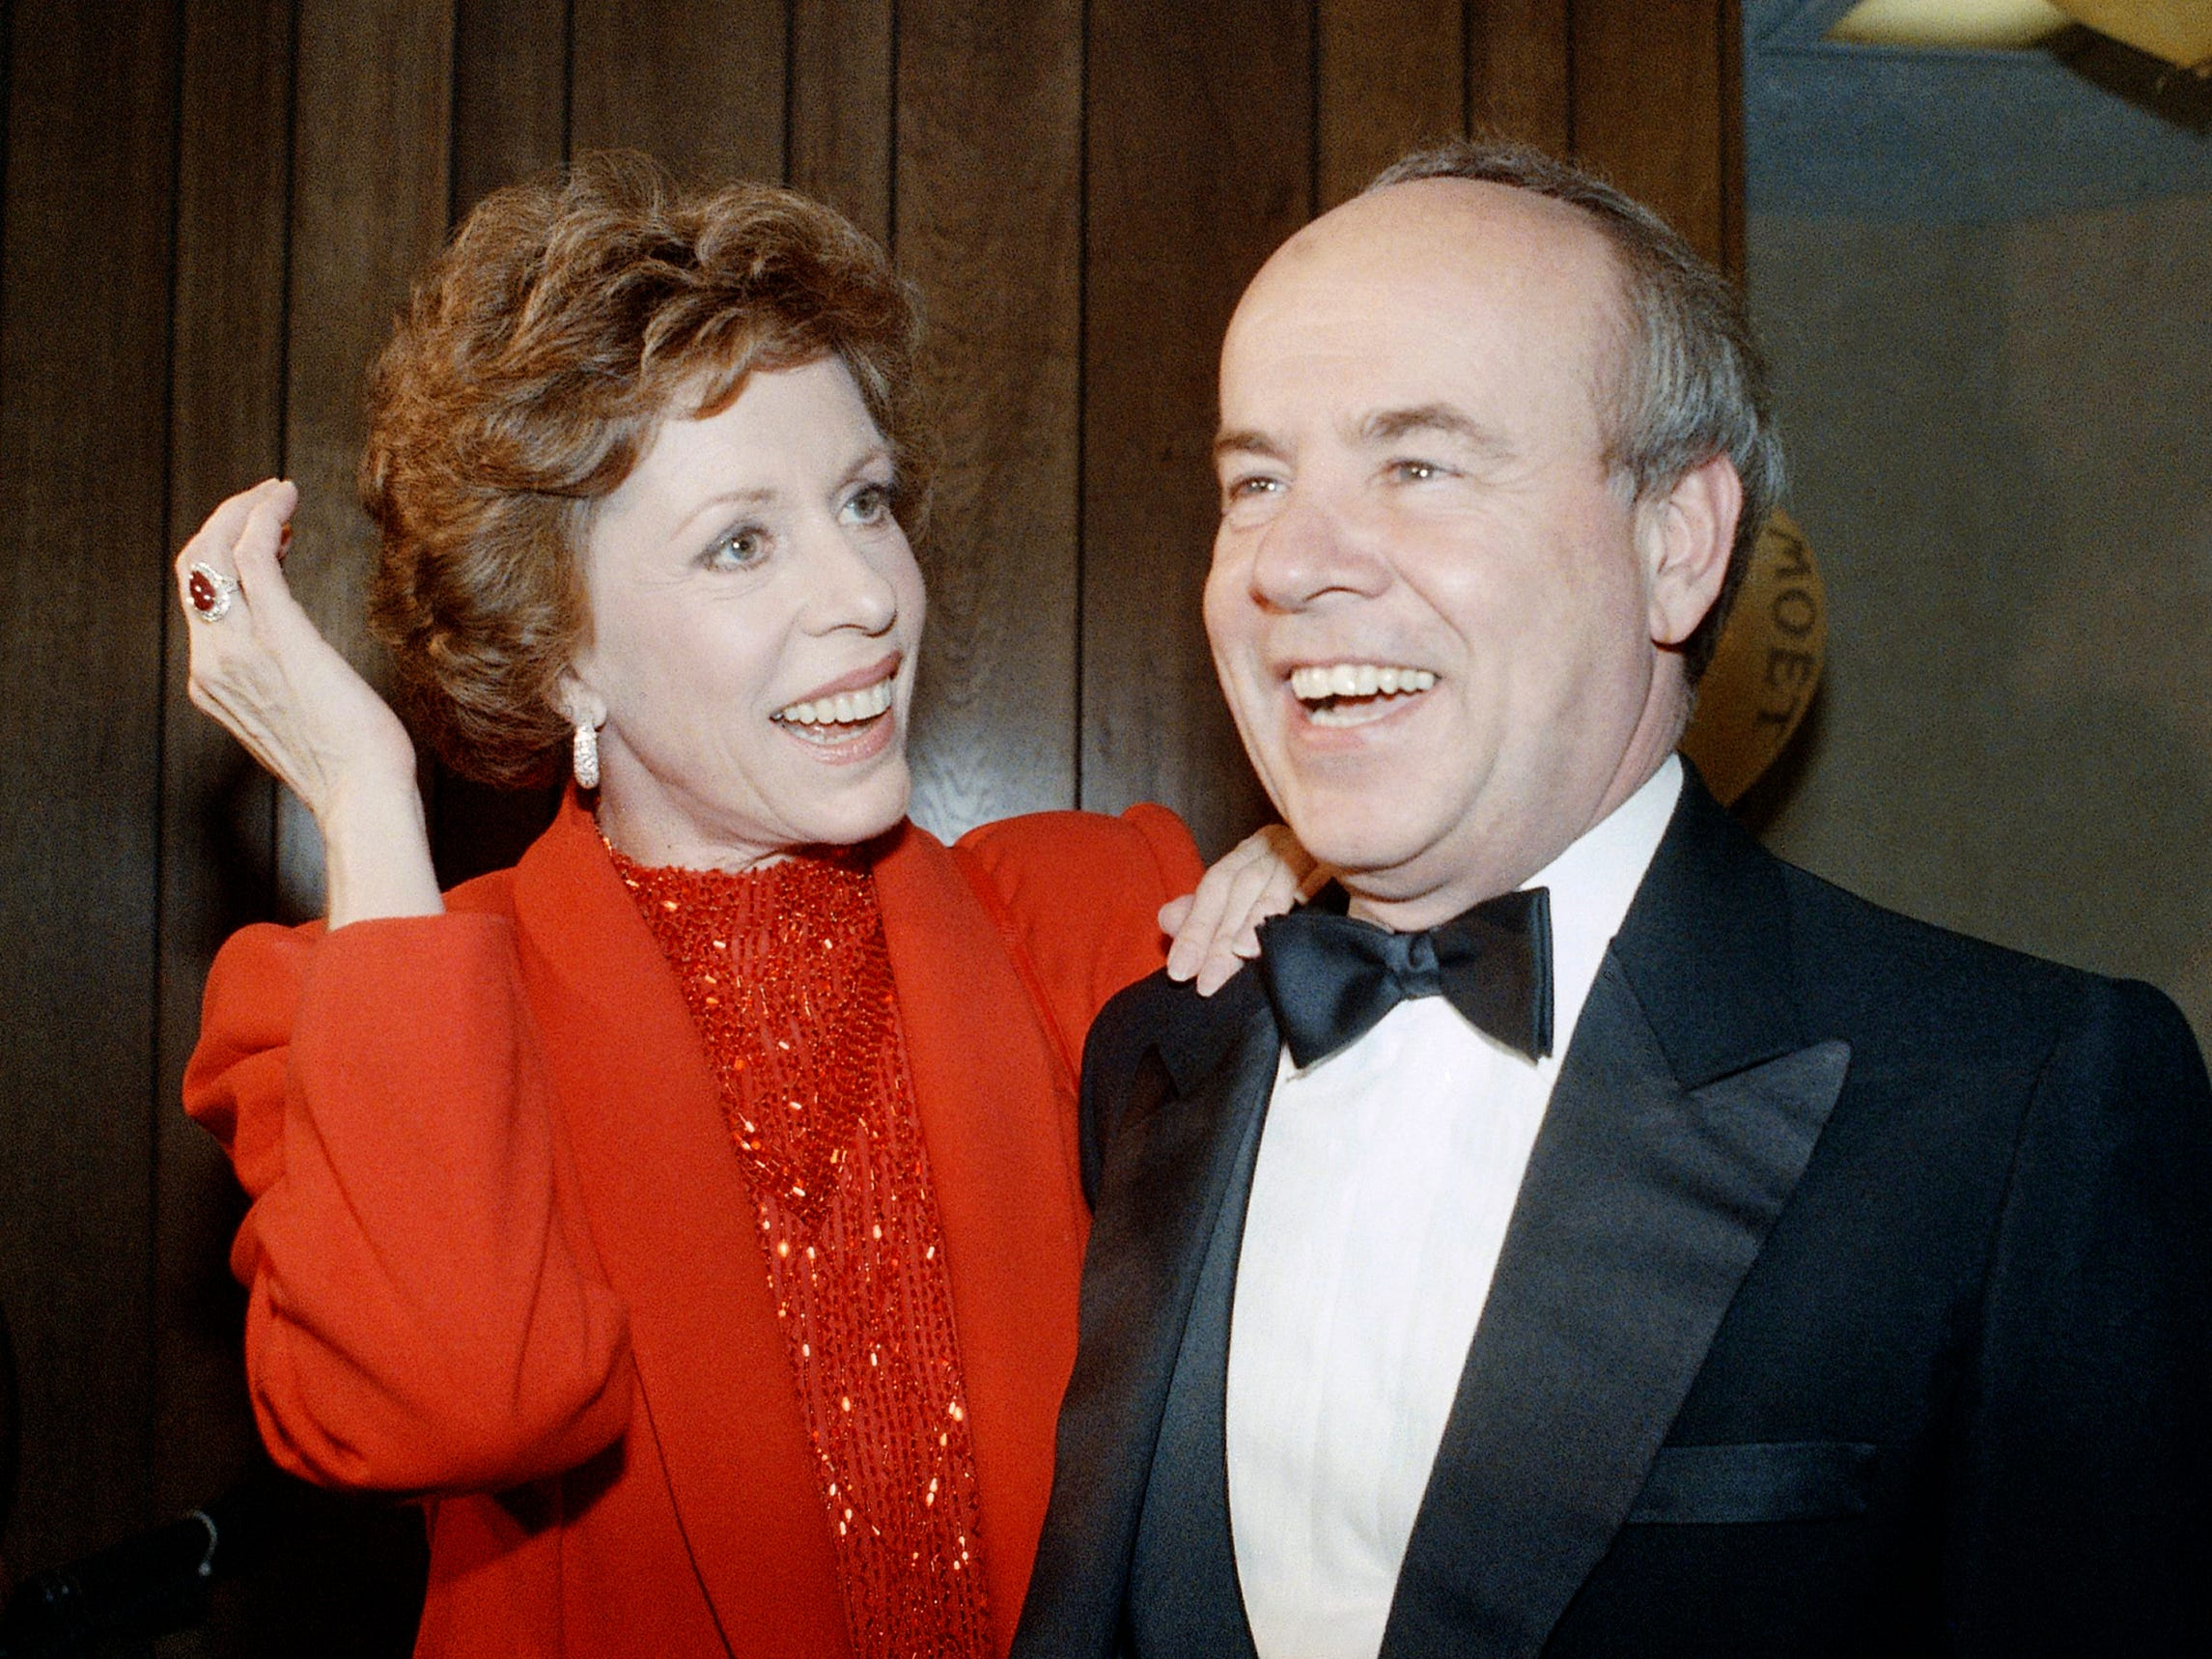 """In this April 26, 1986 file photo, Carol Burnett, left, and veteran comrade in comedy Tim Conway laugh during a gala birthday party for Burnett in Los Angeles.  Conway, the impish second banana to Burnett who won four Emmy Awards on her TV variety show, starred aboard """"McHale's Navy"""" and later created a very short character named Dorf, has died. He was 85. Conway died Tuesday morning, May 14, 2019,  in a Los Angeles care facility after a long illness, according to Howard Bragman, who heads LaBrea Media."""